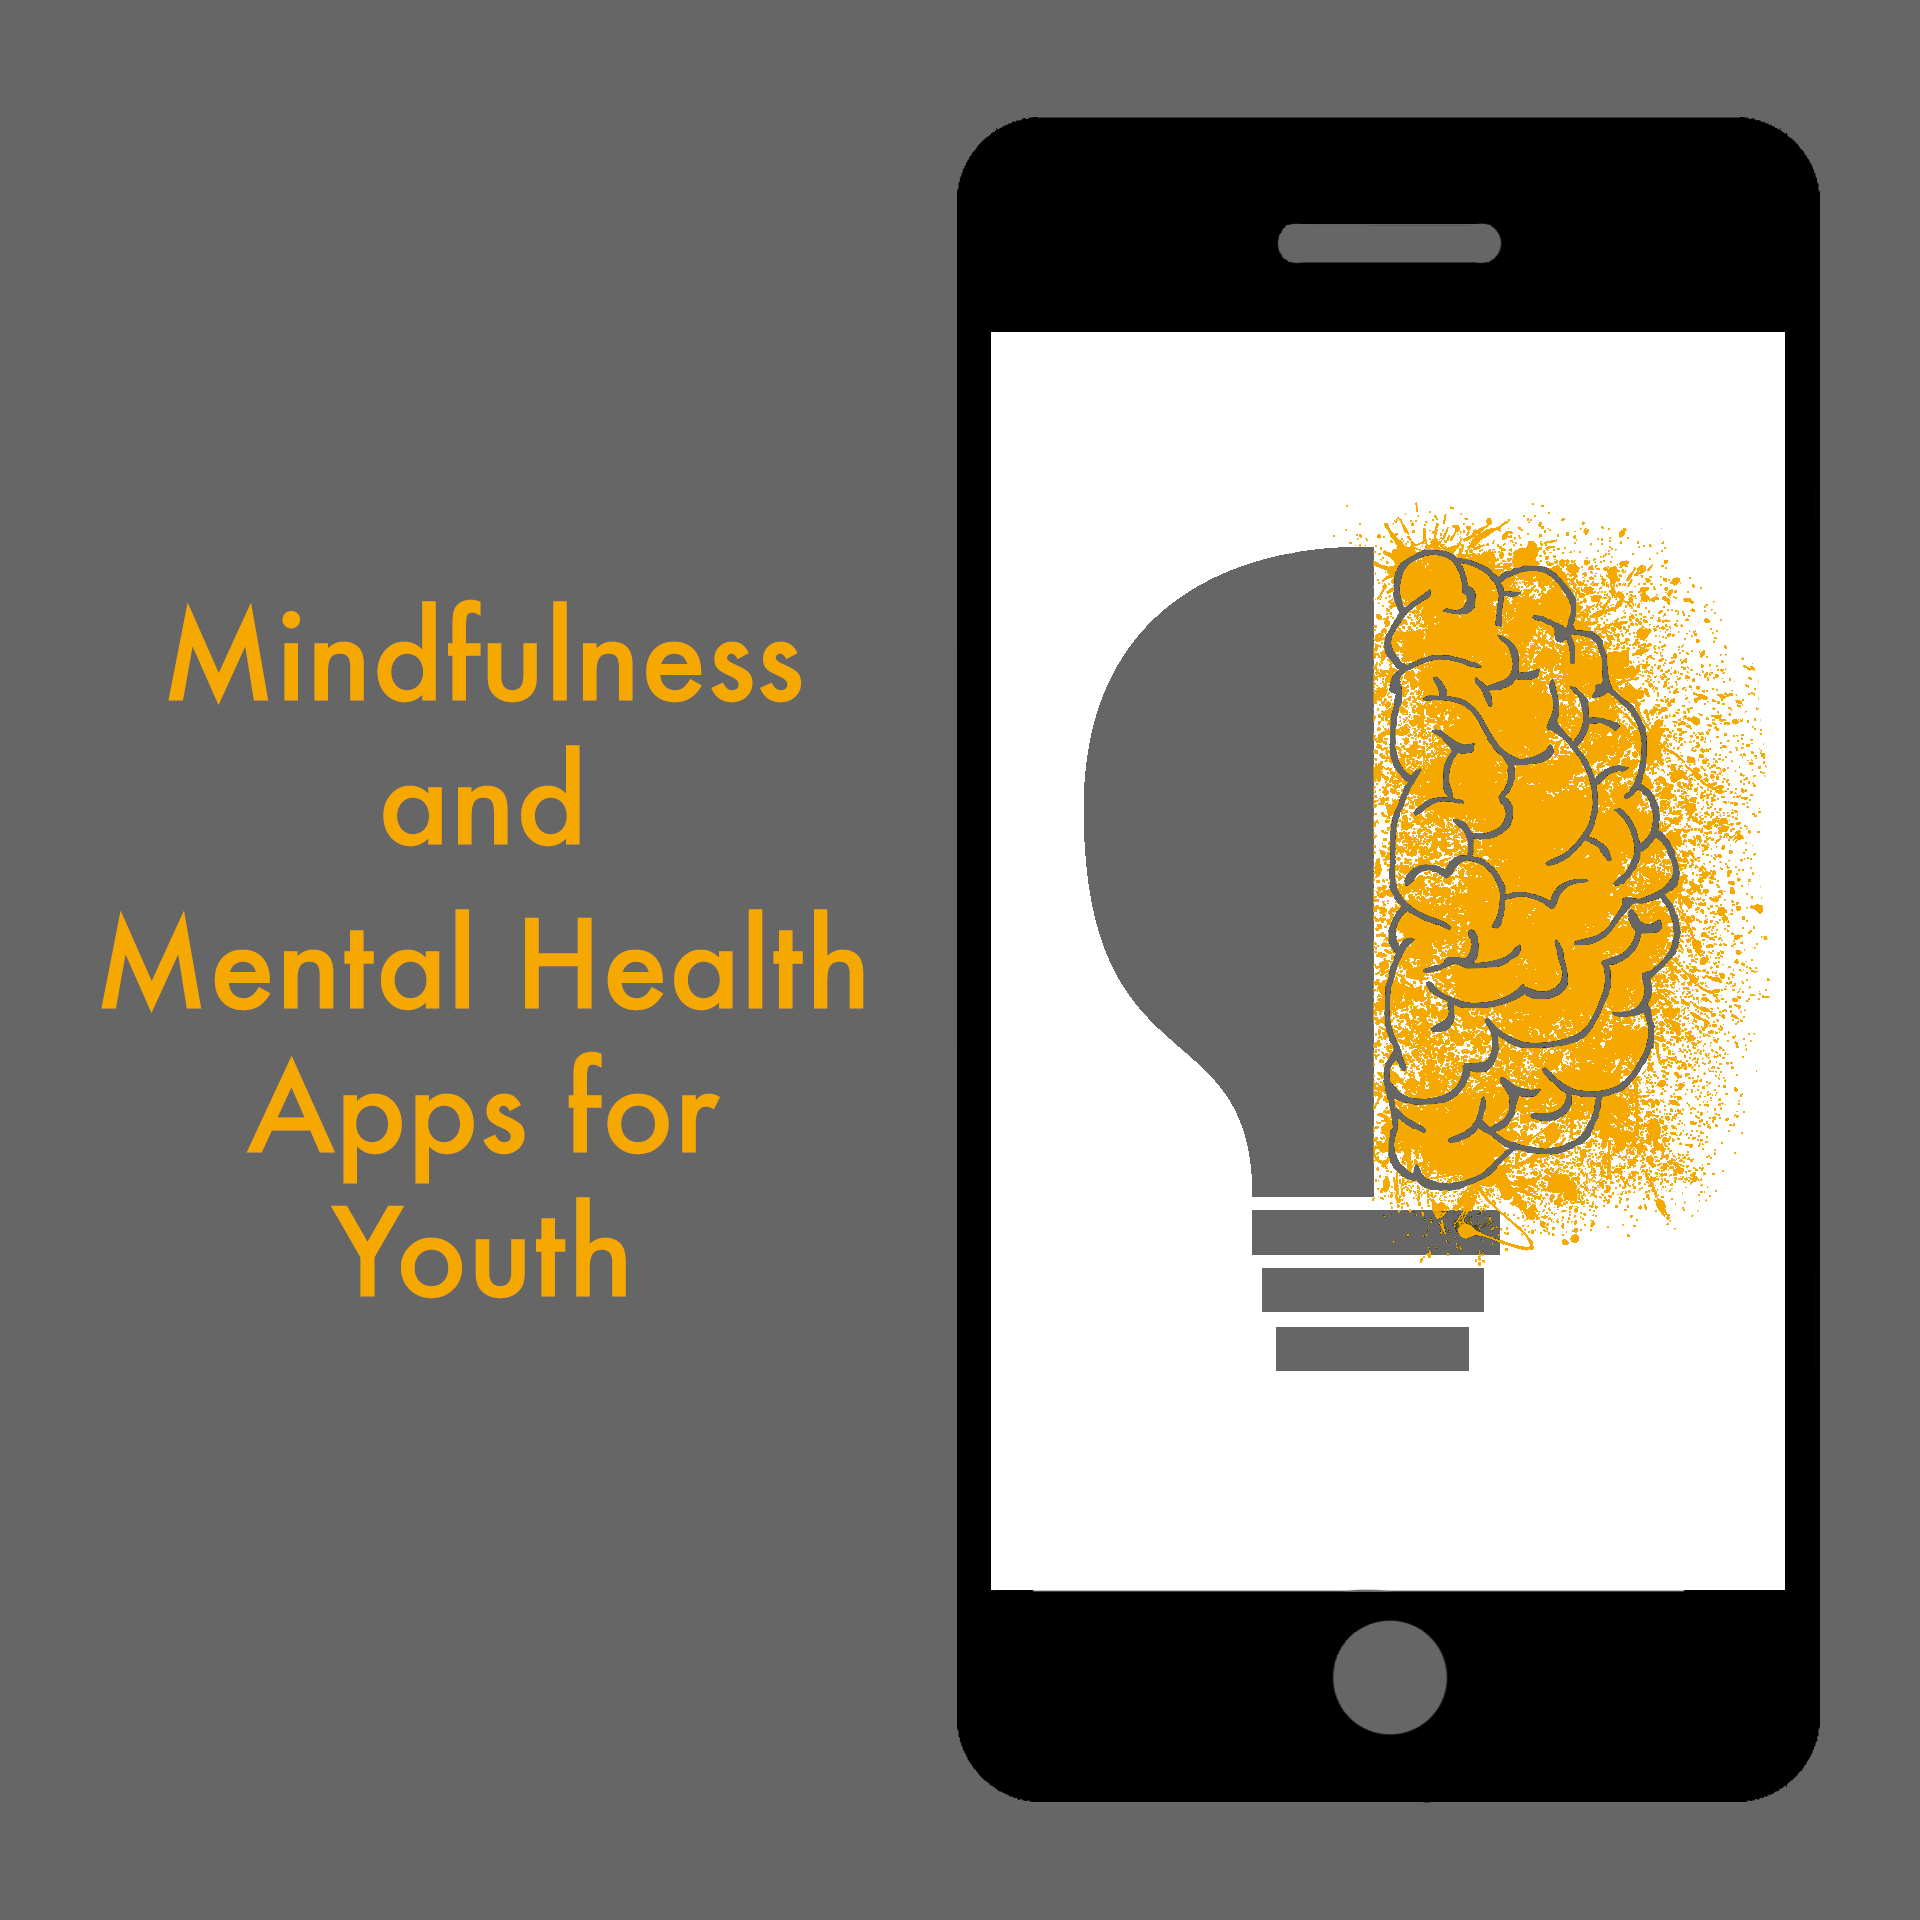 Mindfulness and Mental Health Apps for Youth.jpg